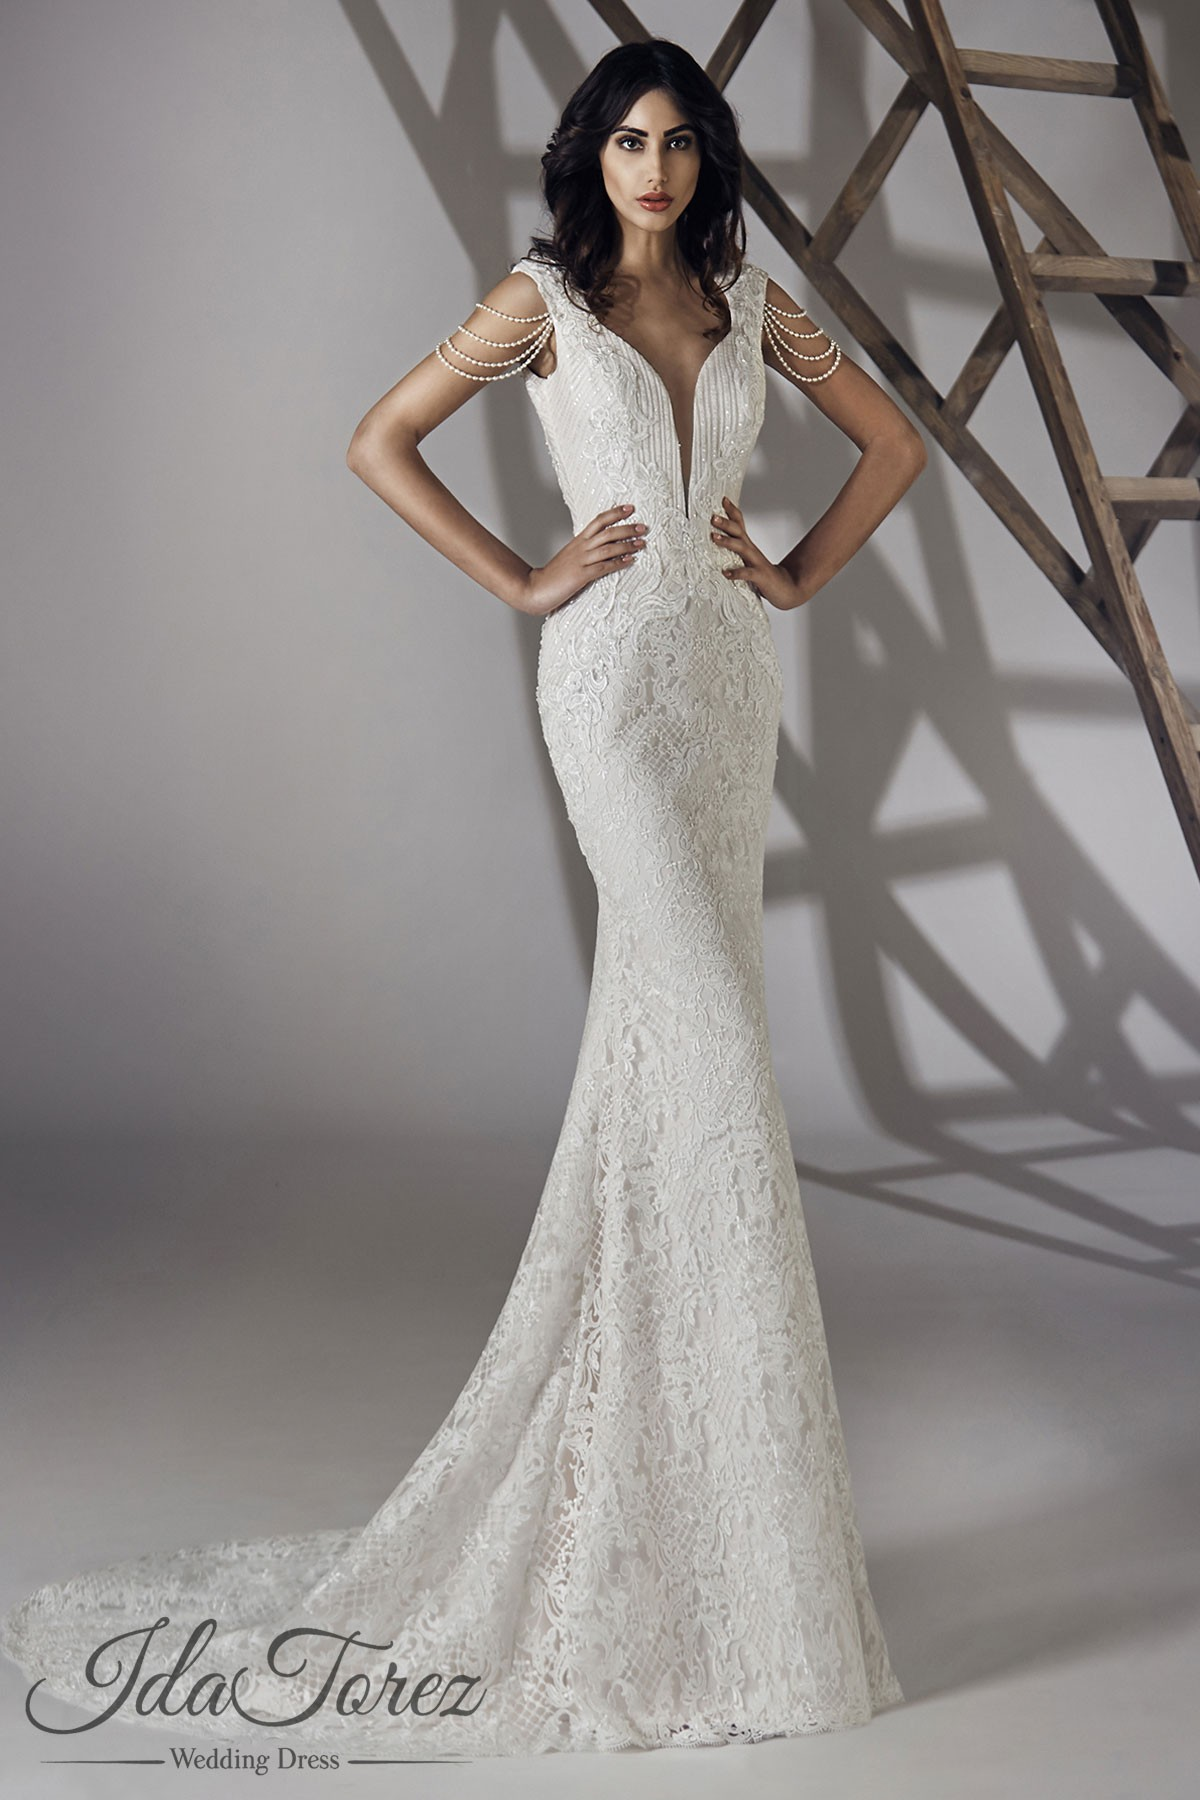 Cocomelody trumpet mermaid court train lace open back wedding dress queenly trumpet mermaid v neck natural court train lace ivory sleeveless open back wedding dress beading 01066 junglespirit Choice Image